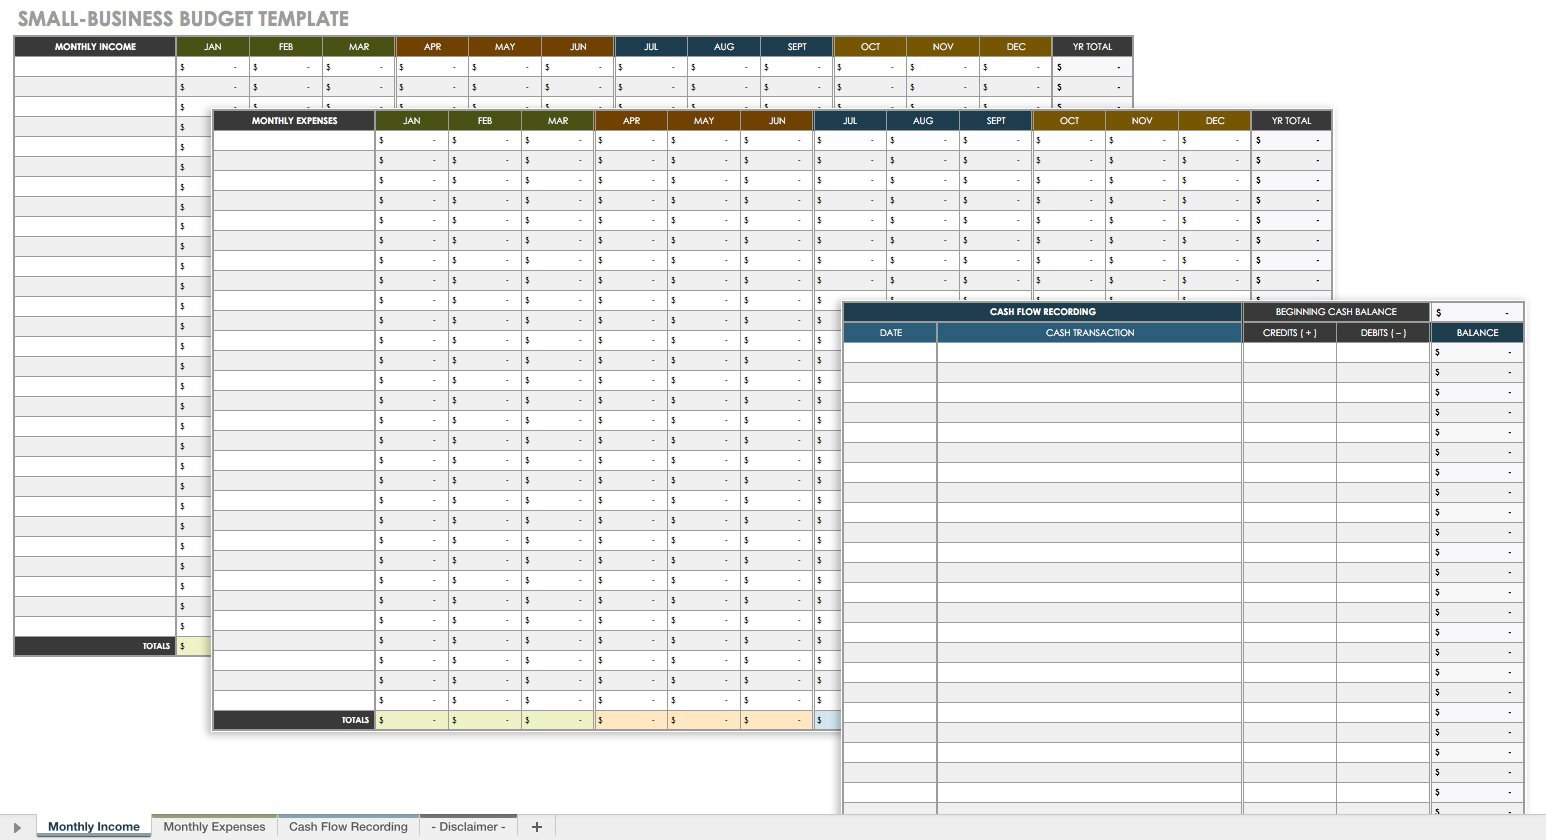 All The Best Business Budget Templates  Smartsheet With Regard To Budget Template For Startup Business